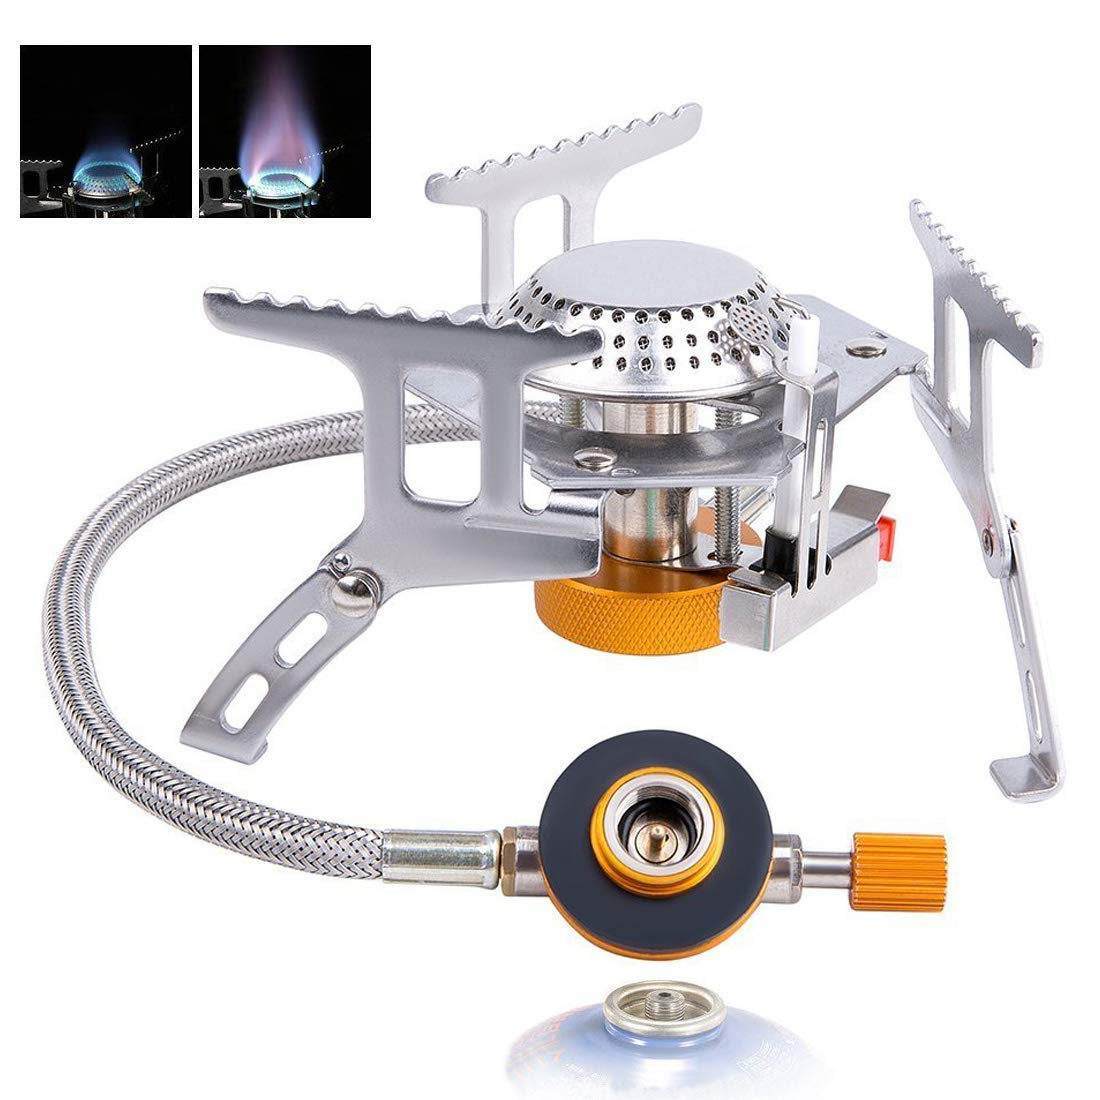 VOUMEY Camping Gas Stove,Portable Camping Gas Stove with Convenient Piezo Ignition,Foldable Split Furnace Stove Cooking Burner with Carry Case Box